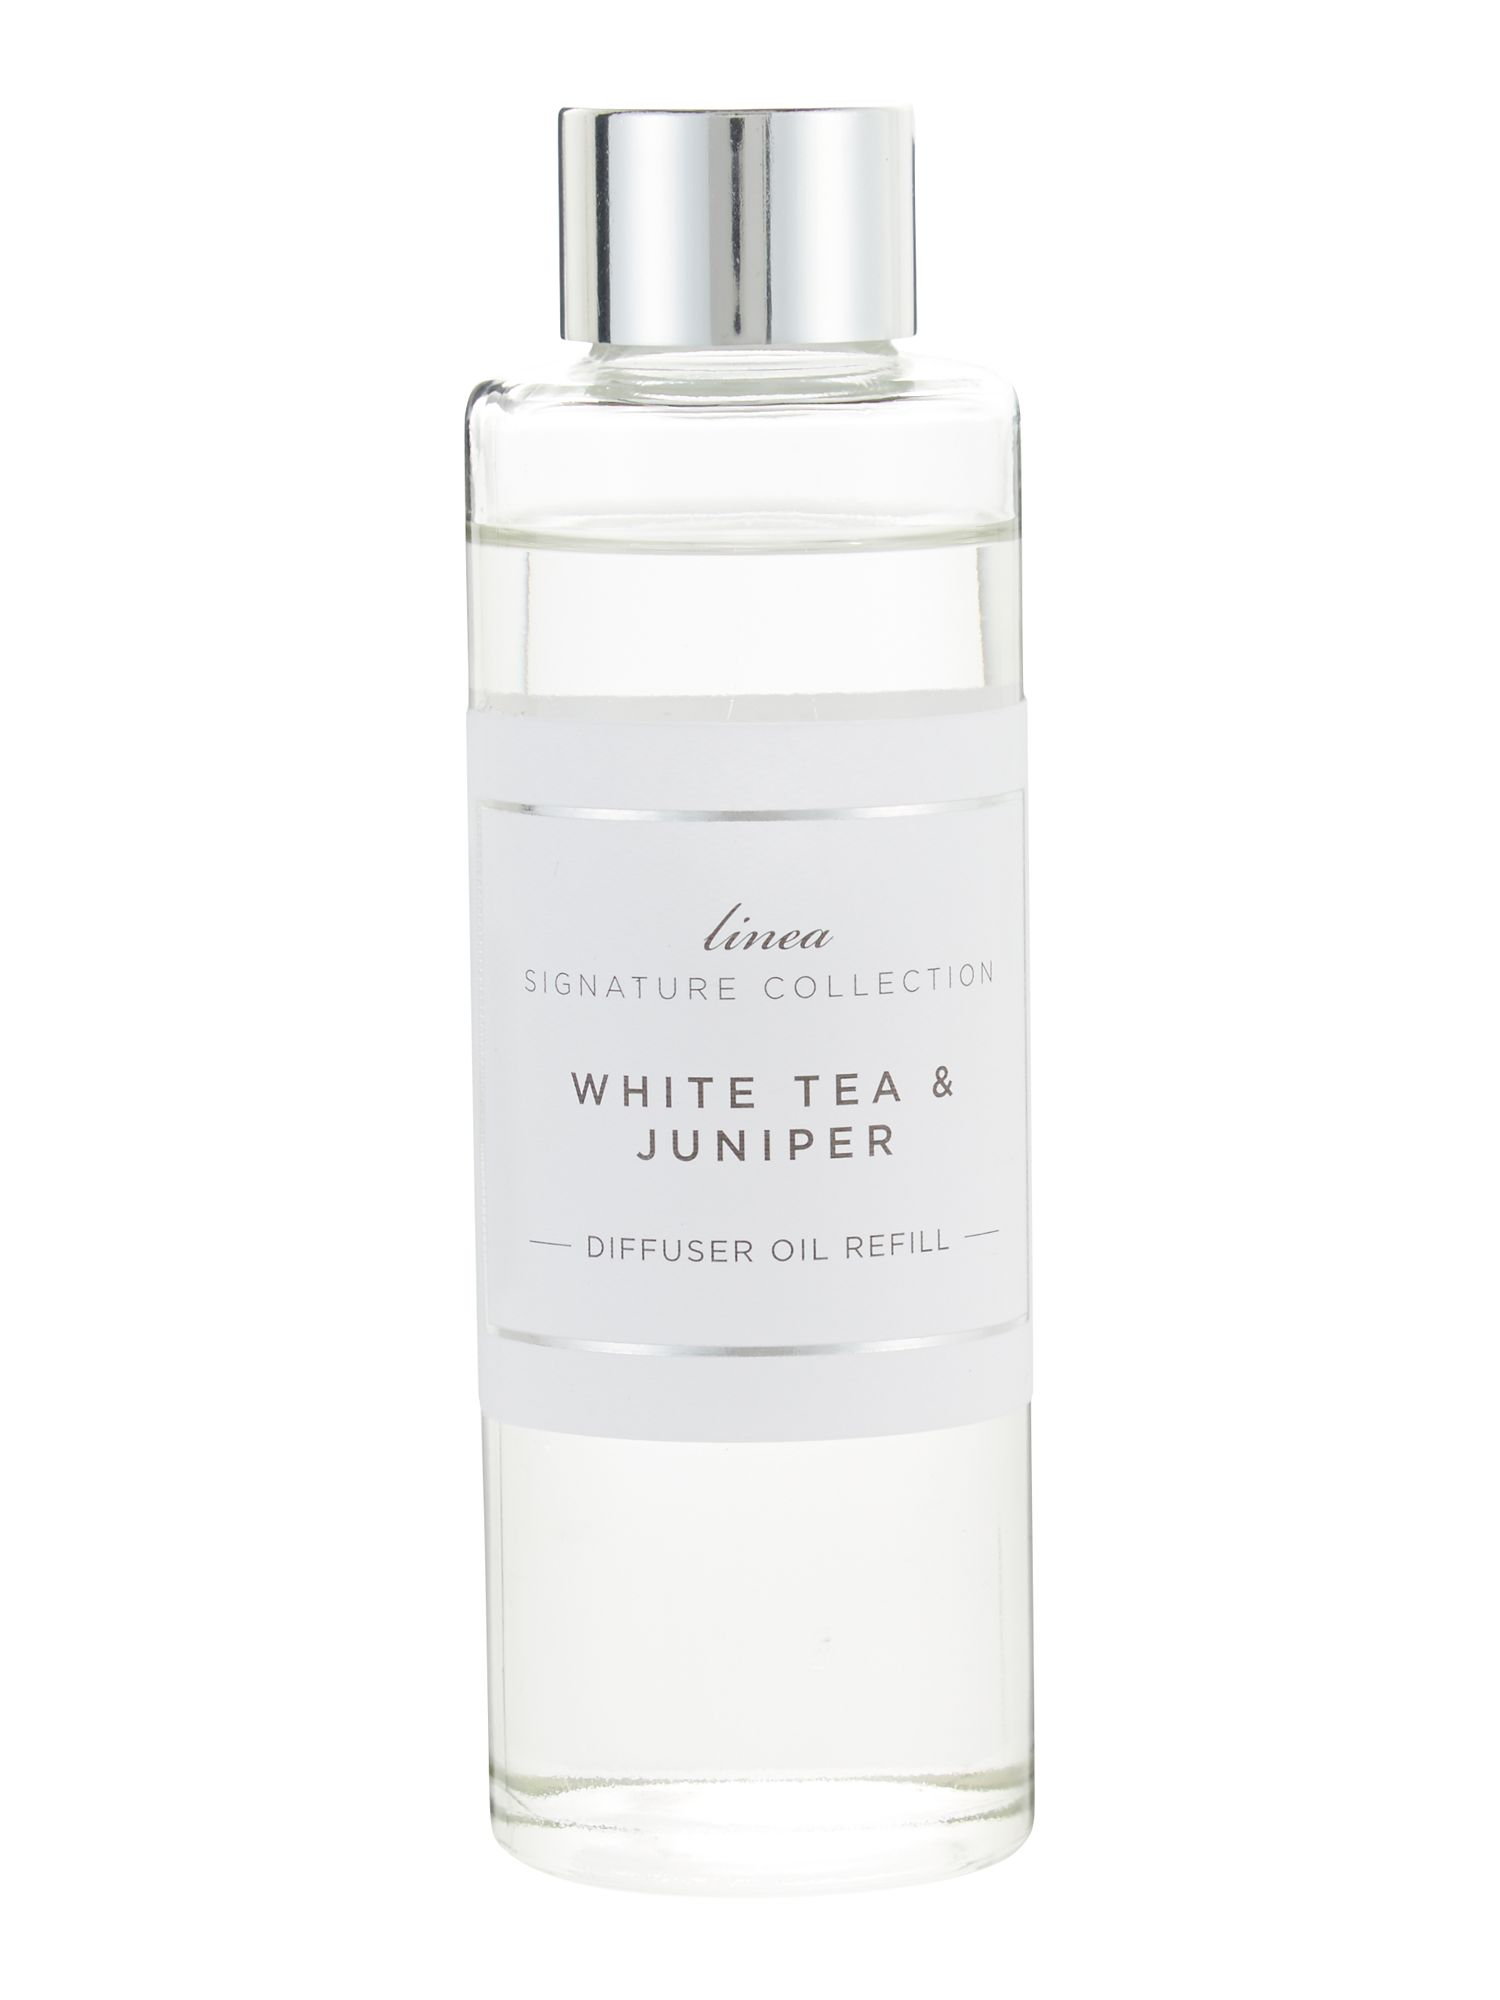 White tea & juniper refill oil